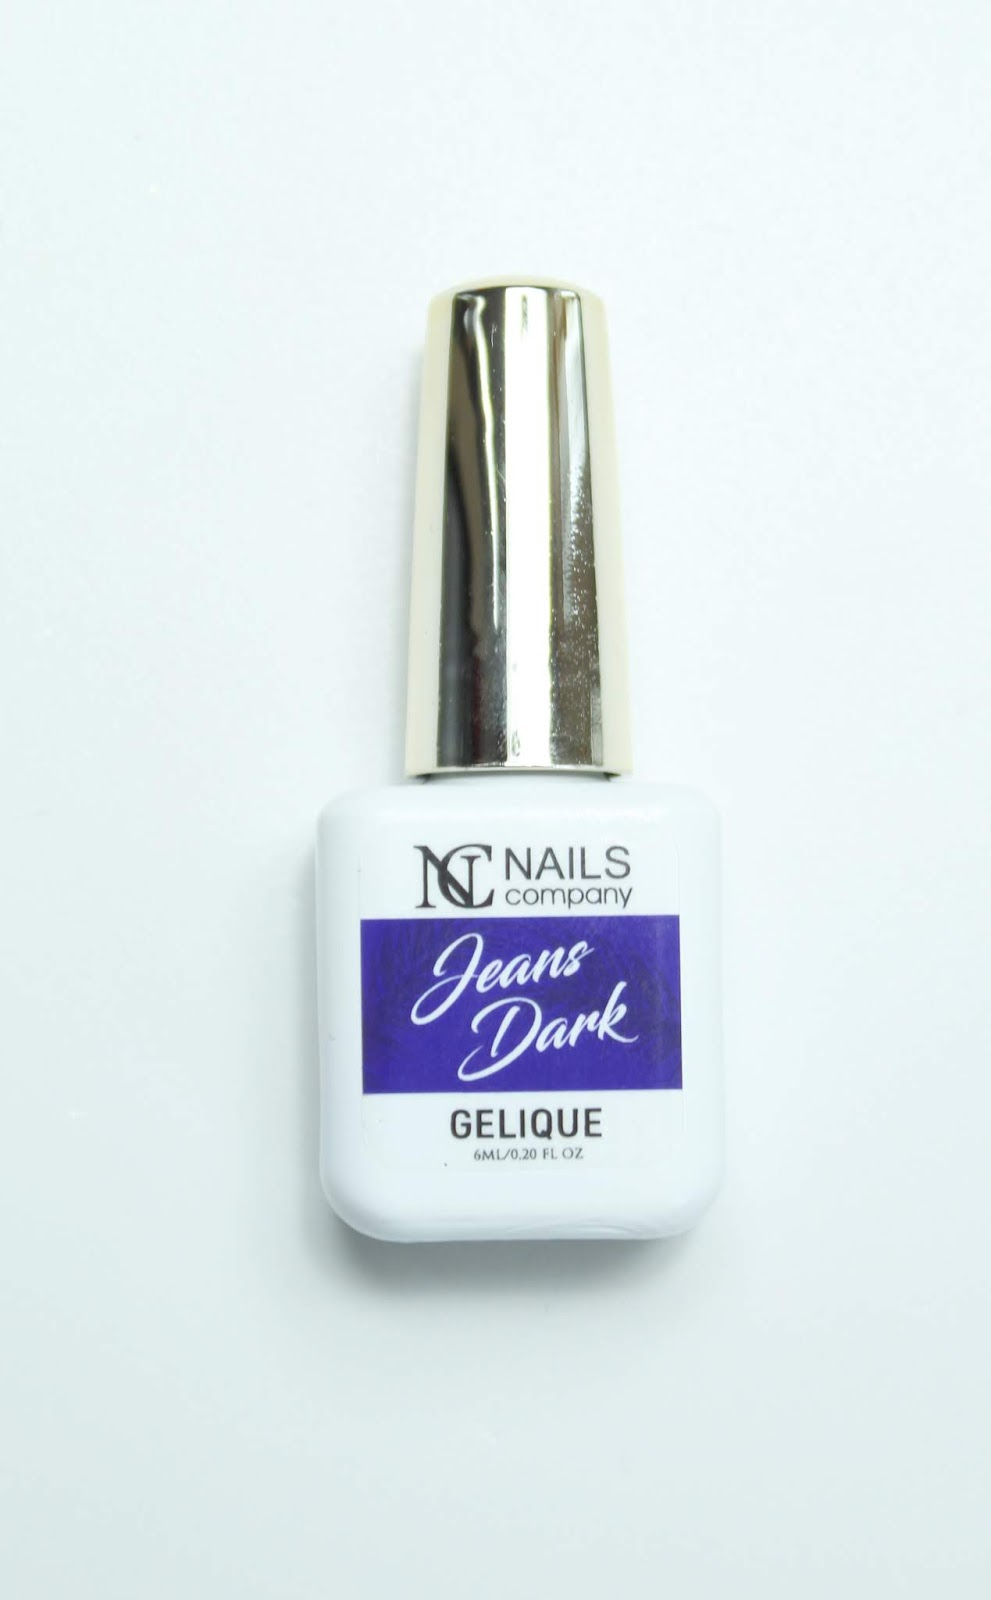 NC Nails Company Jeans Dark